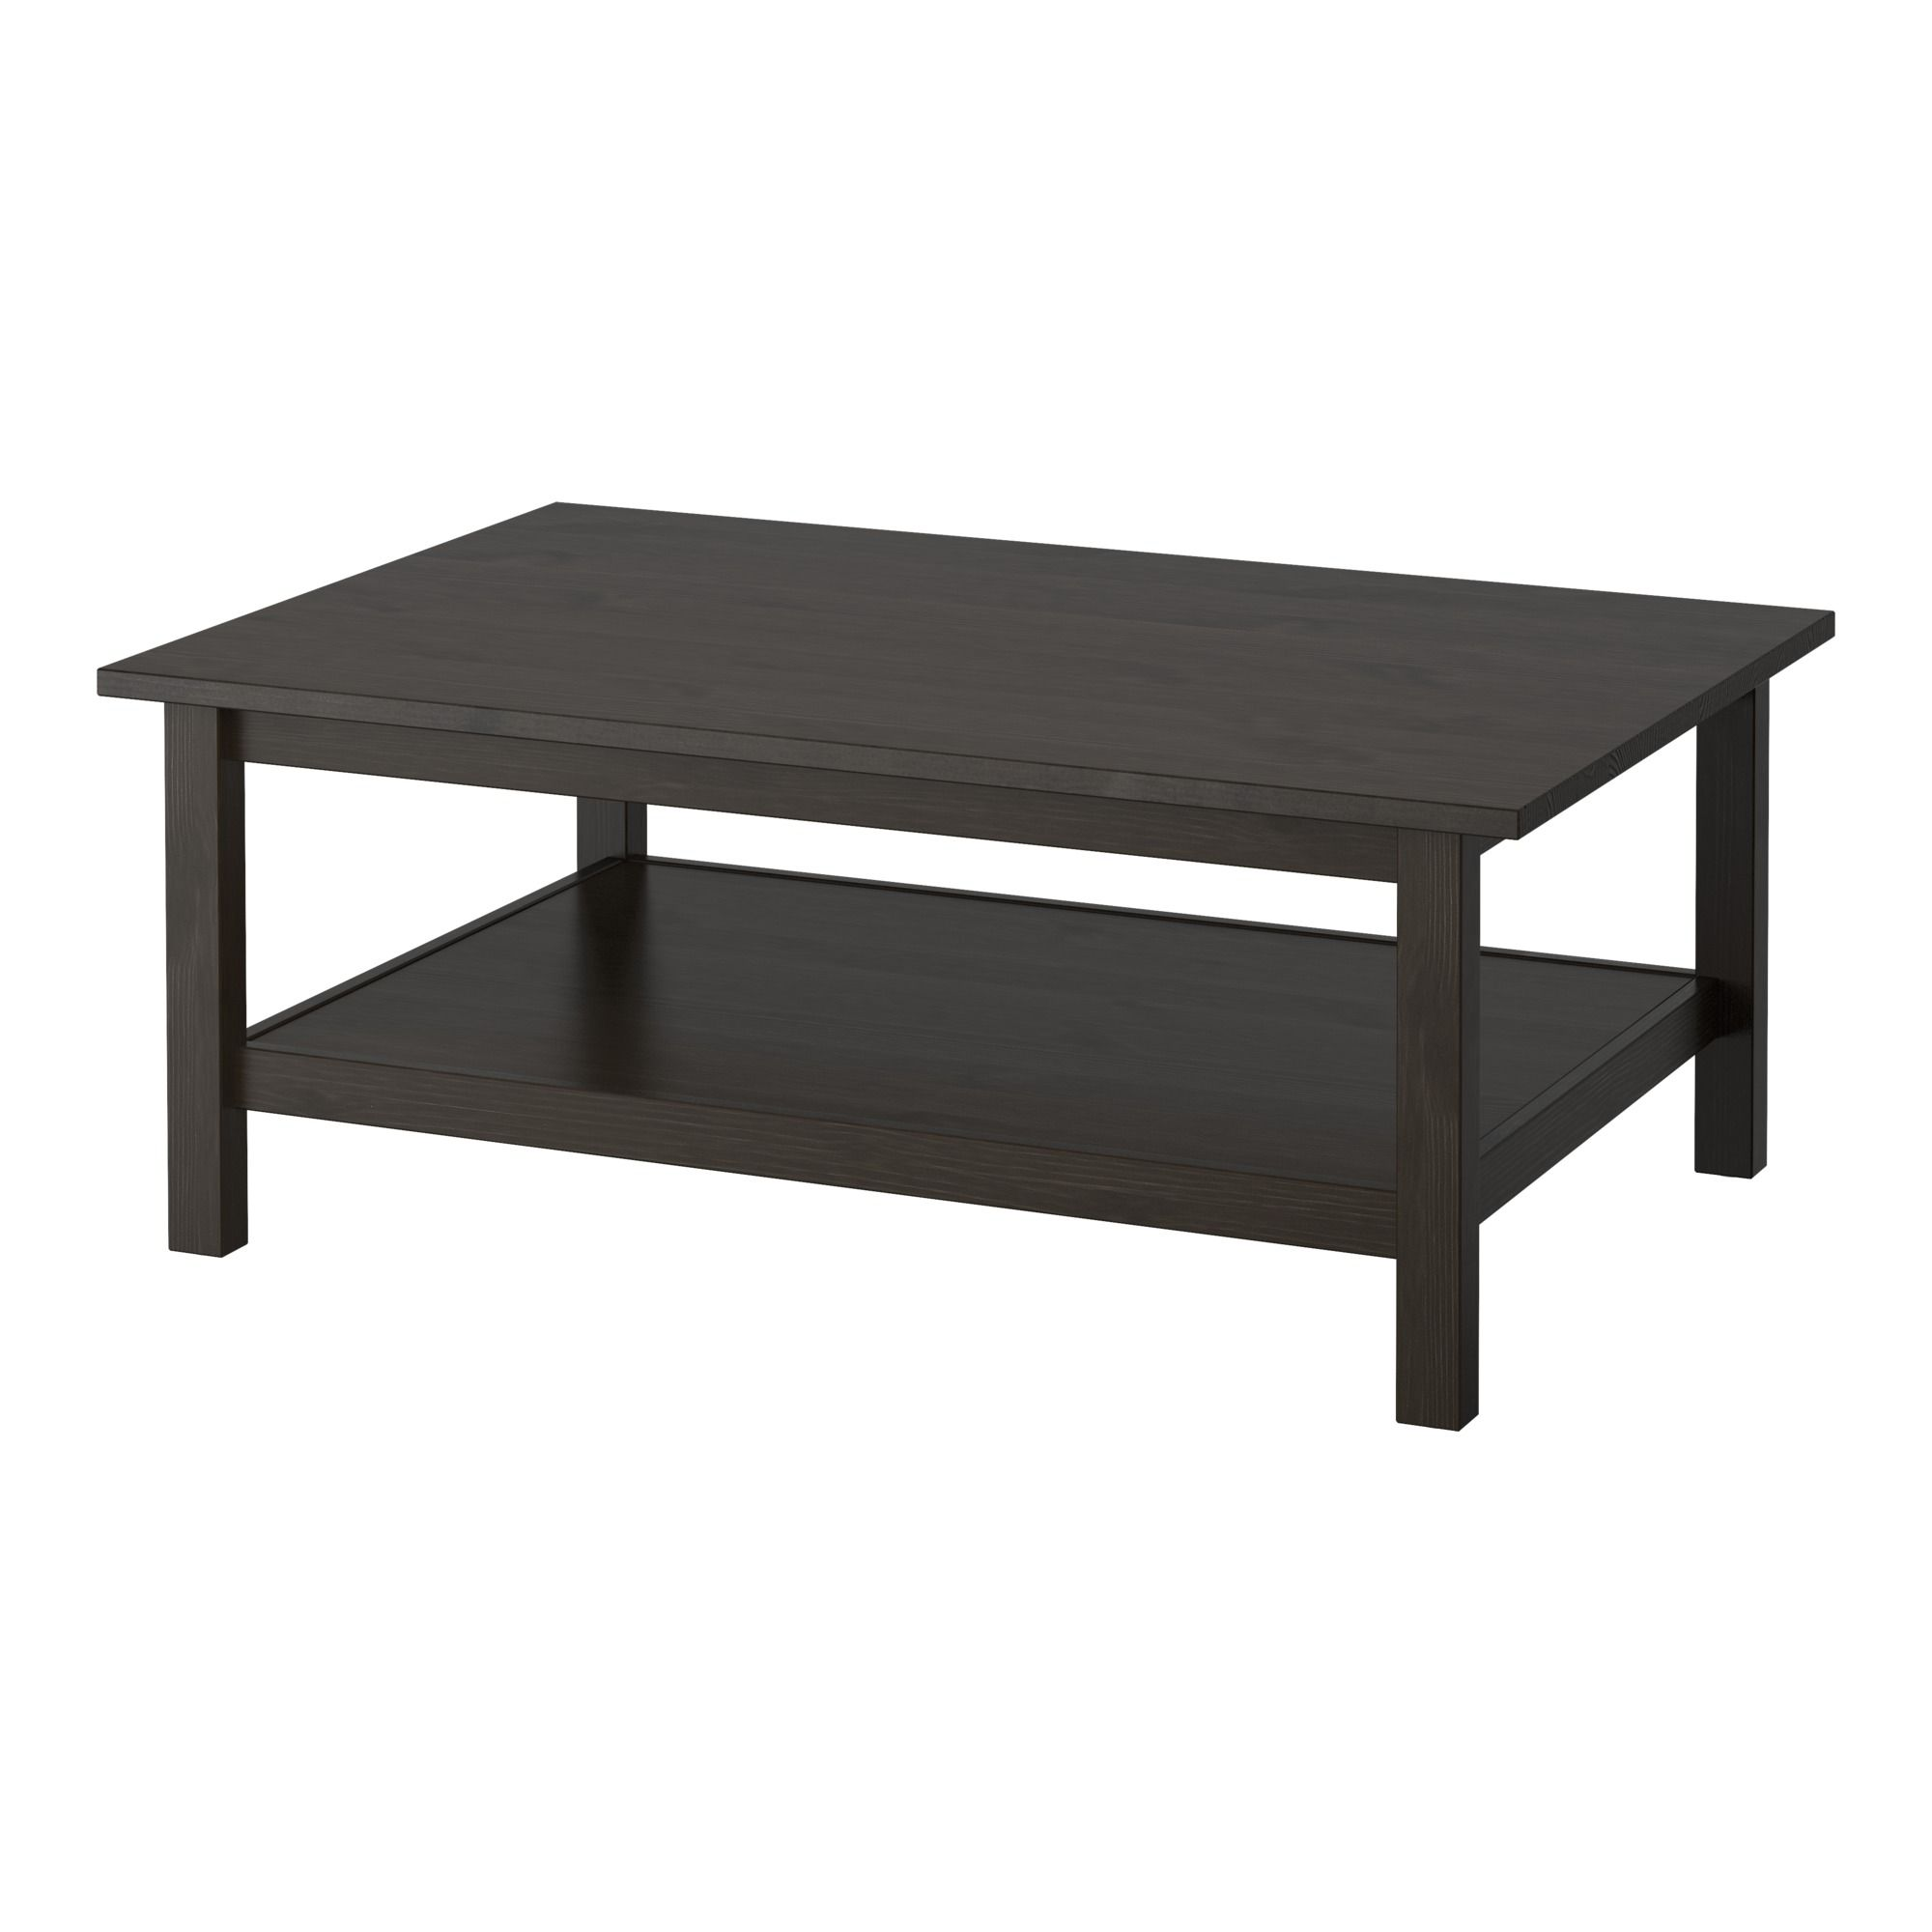 Ikea Couchtisch Schwarz Hemnes Coffee Table Black Brown Ikea Living Room Kitchen